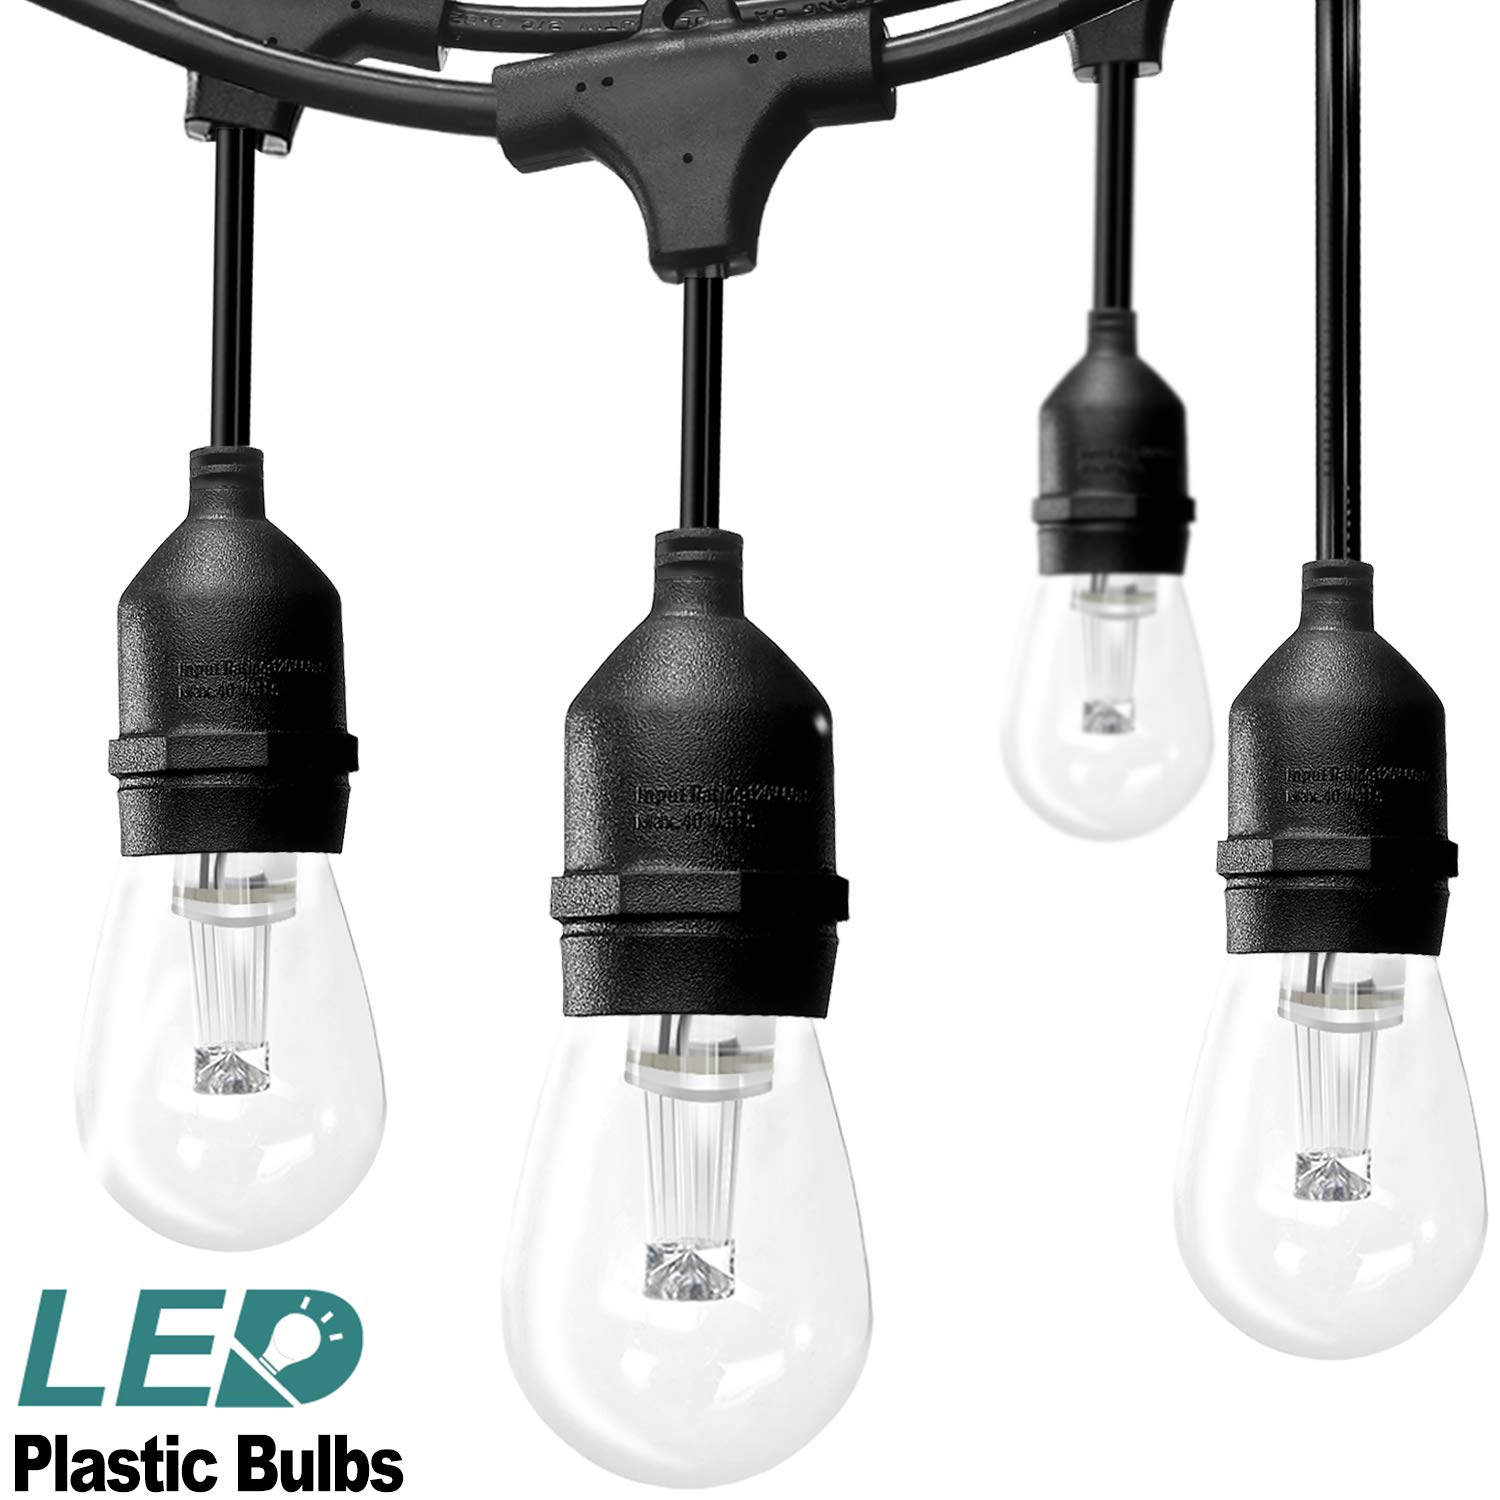 48FT LED Outdoor String Lights Commercial Great Weatherproof Strand with Dimmable 2W Edison Vintage Bulbs and Hanging Sockets - UL Listed Heavy-Duty Decorative Café Patio Lights for Bistro Garden Wed by addlon